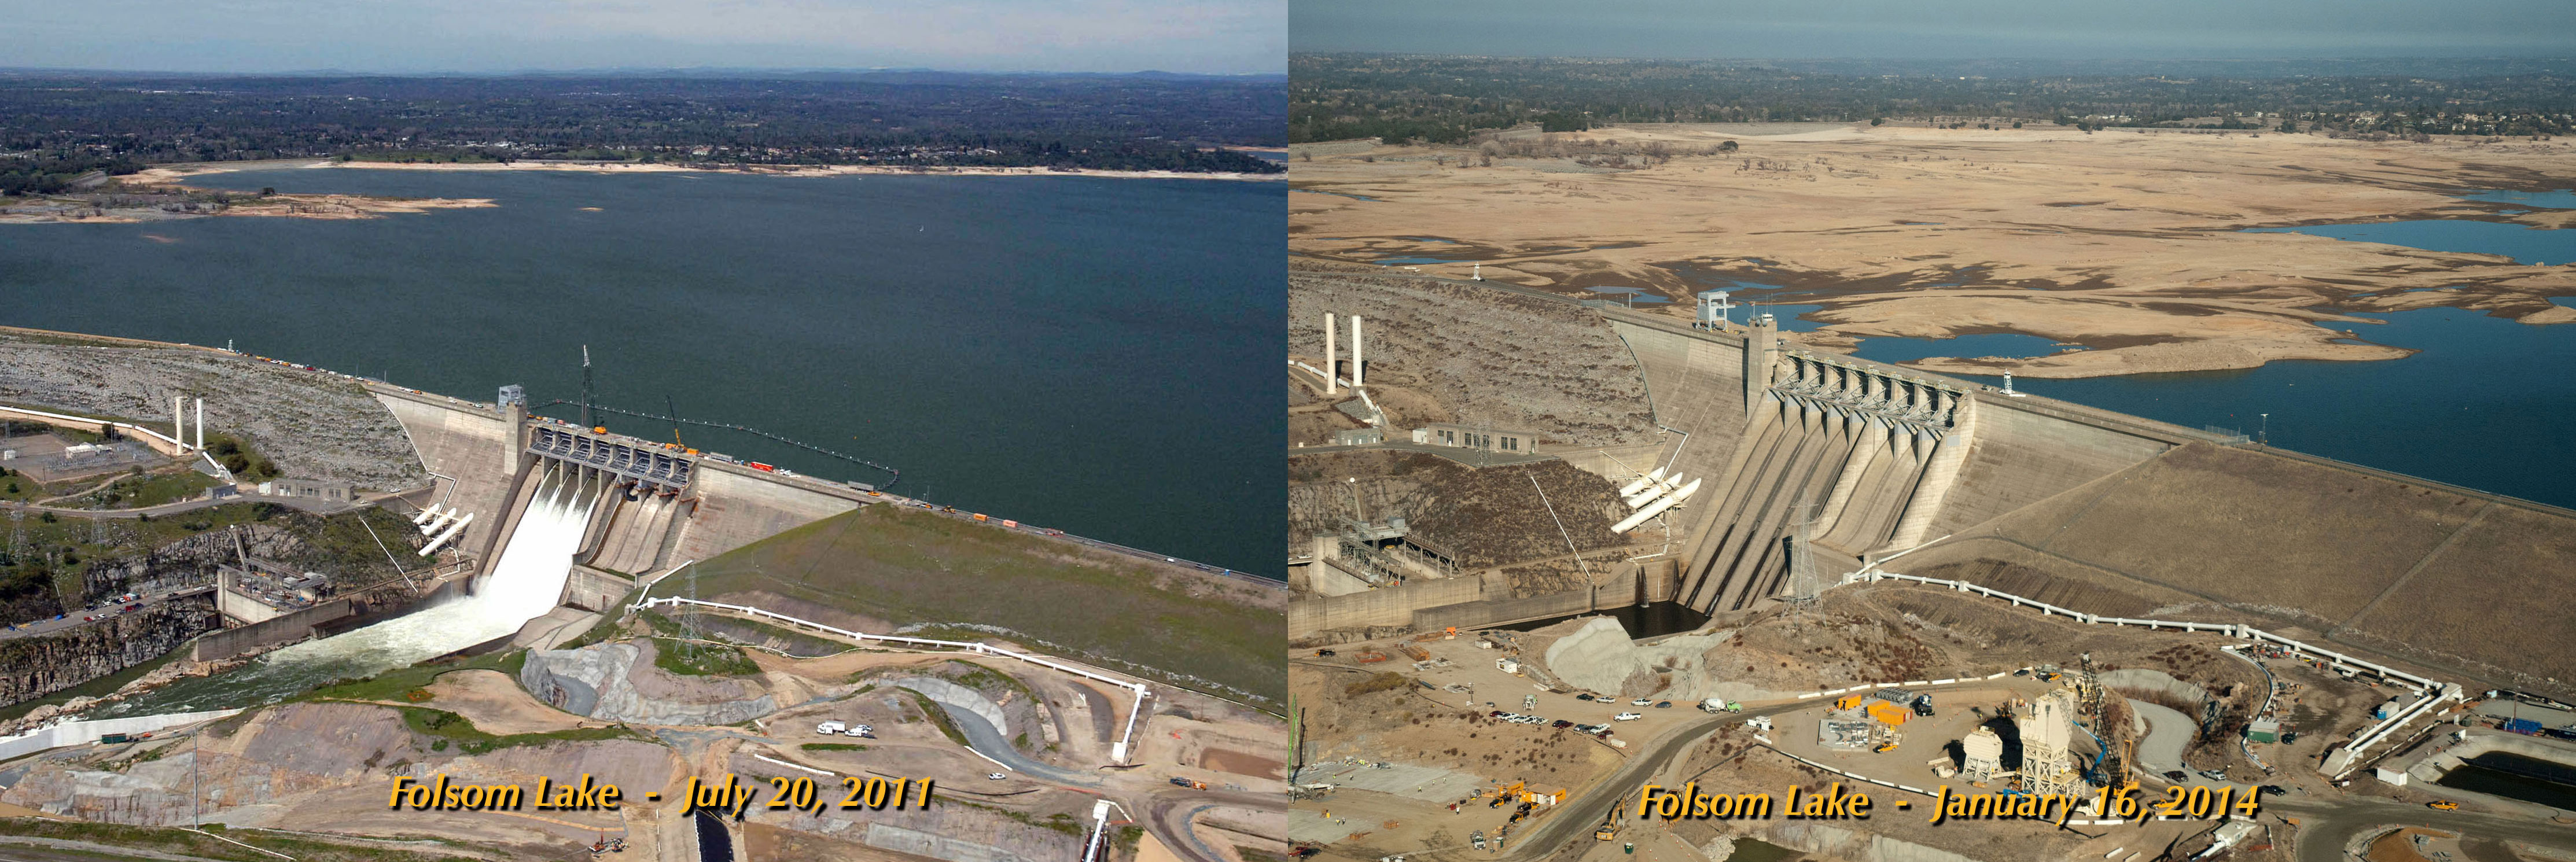 7d023916c8348 The severity of California s drought is seen in these images of Folsom  Lake